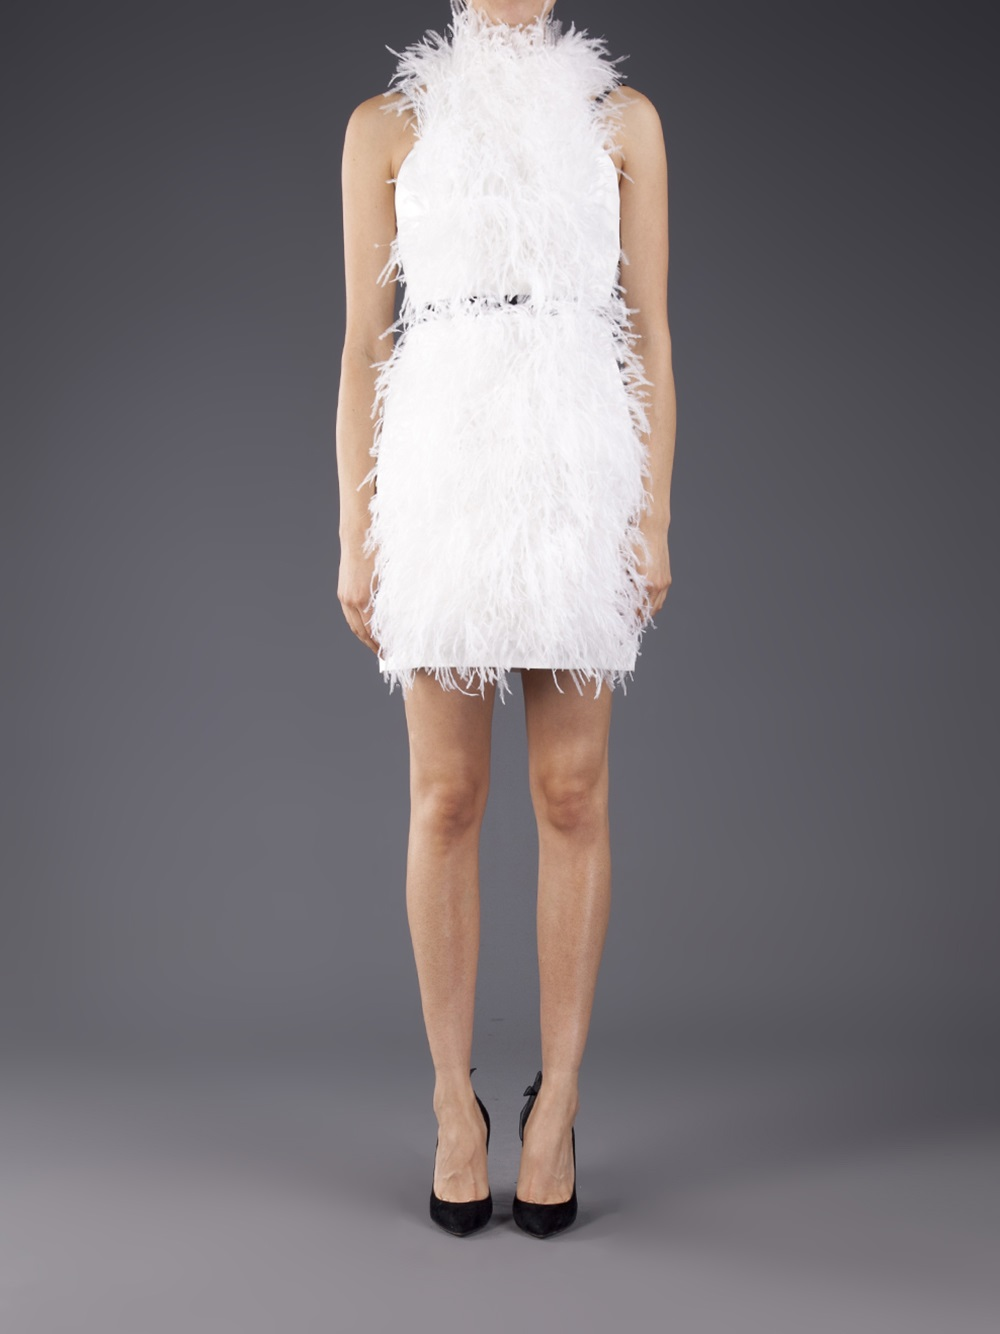 Lyst Jason Wu Ostrich Feather Dress In White